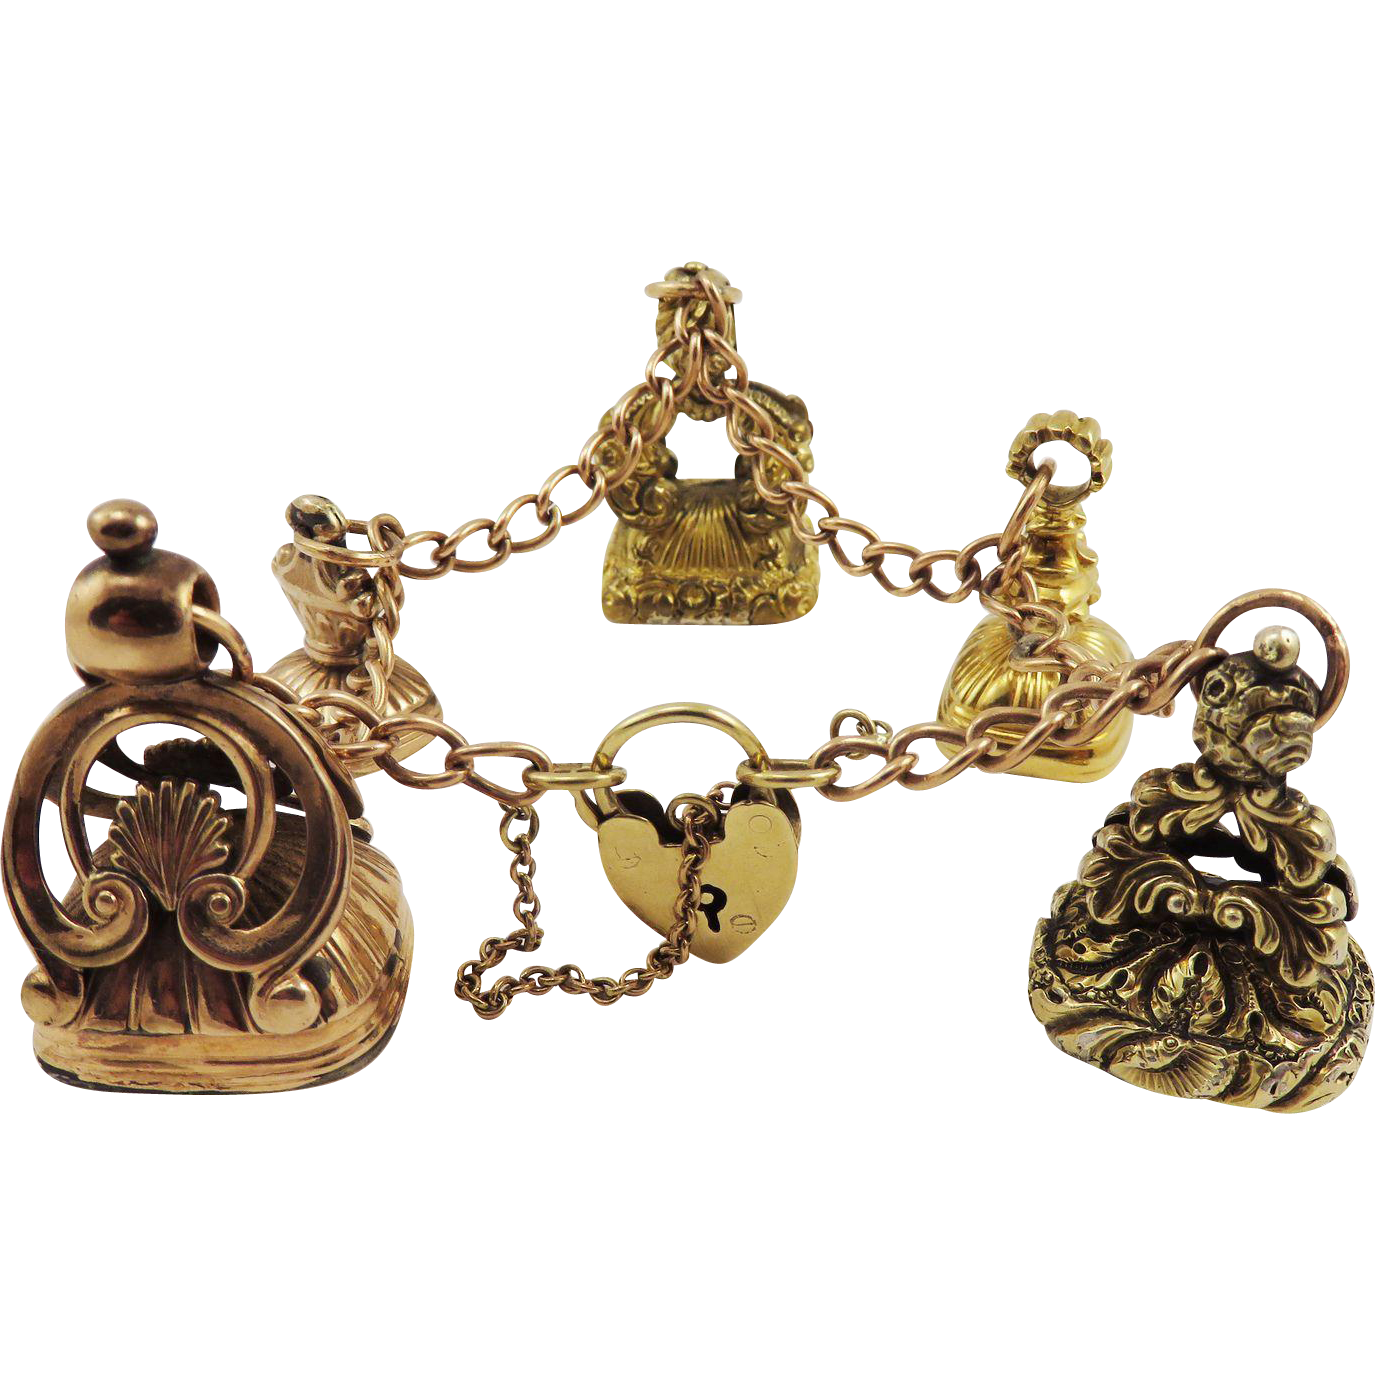 ONE-OF-A-KIND Edwardian 9k Heart Padlock Bracelet w/Five Georgian Hardstone/Pinchbeck/9k/15k Fob Seals, c.1800/1910!